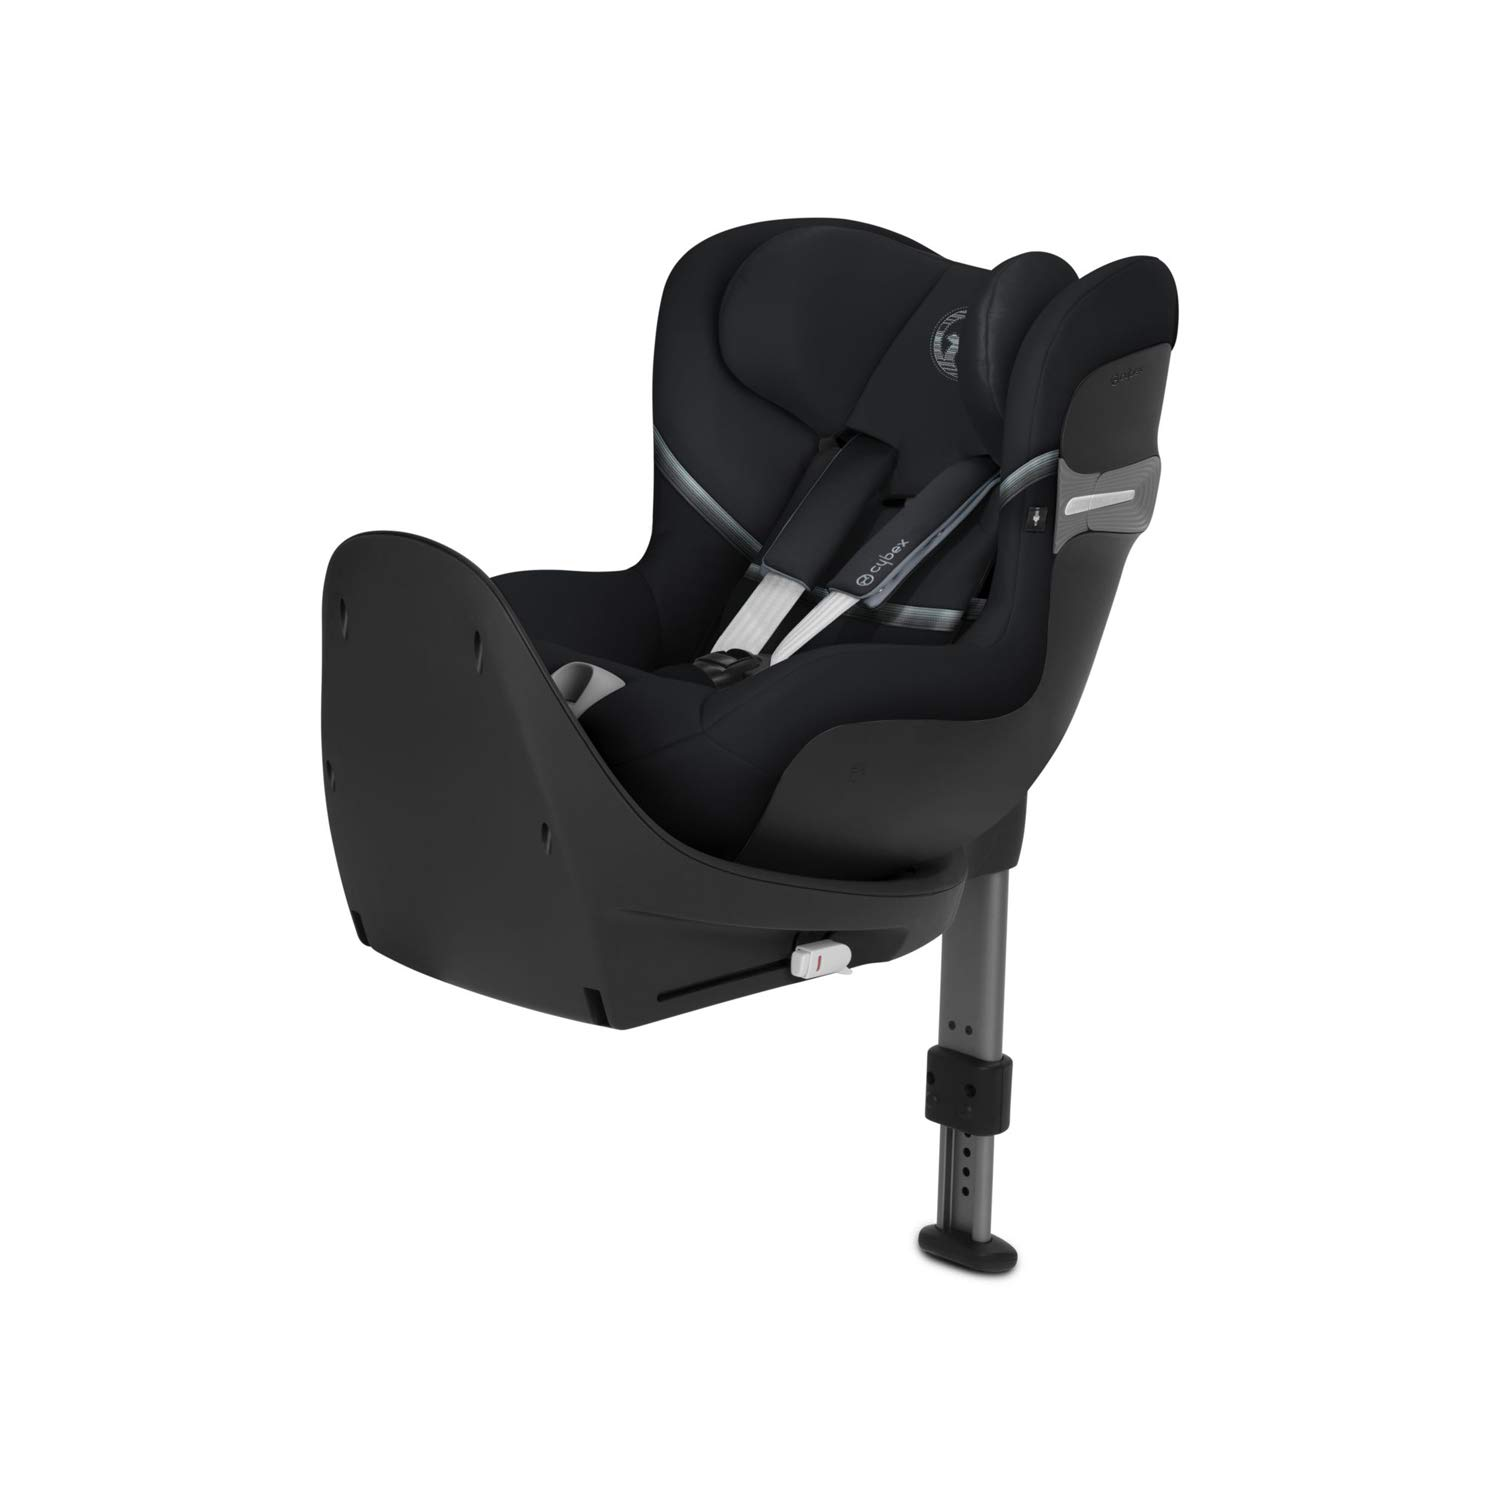 CYBEX Gold Sirona S i-Size Child´s Car Seat, 360° Rotation for easy entry and exit position, Group 0+/1 (max 18kg) From birth up to approx. 4 years (45 cm to 105 cm), Deep Black